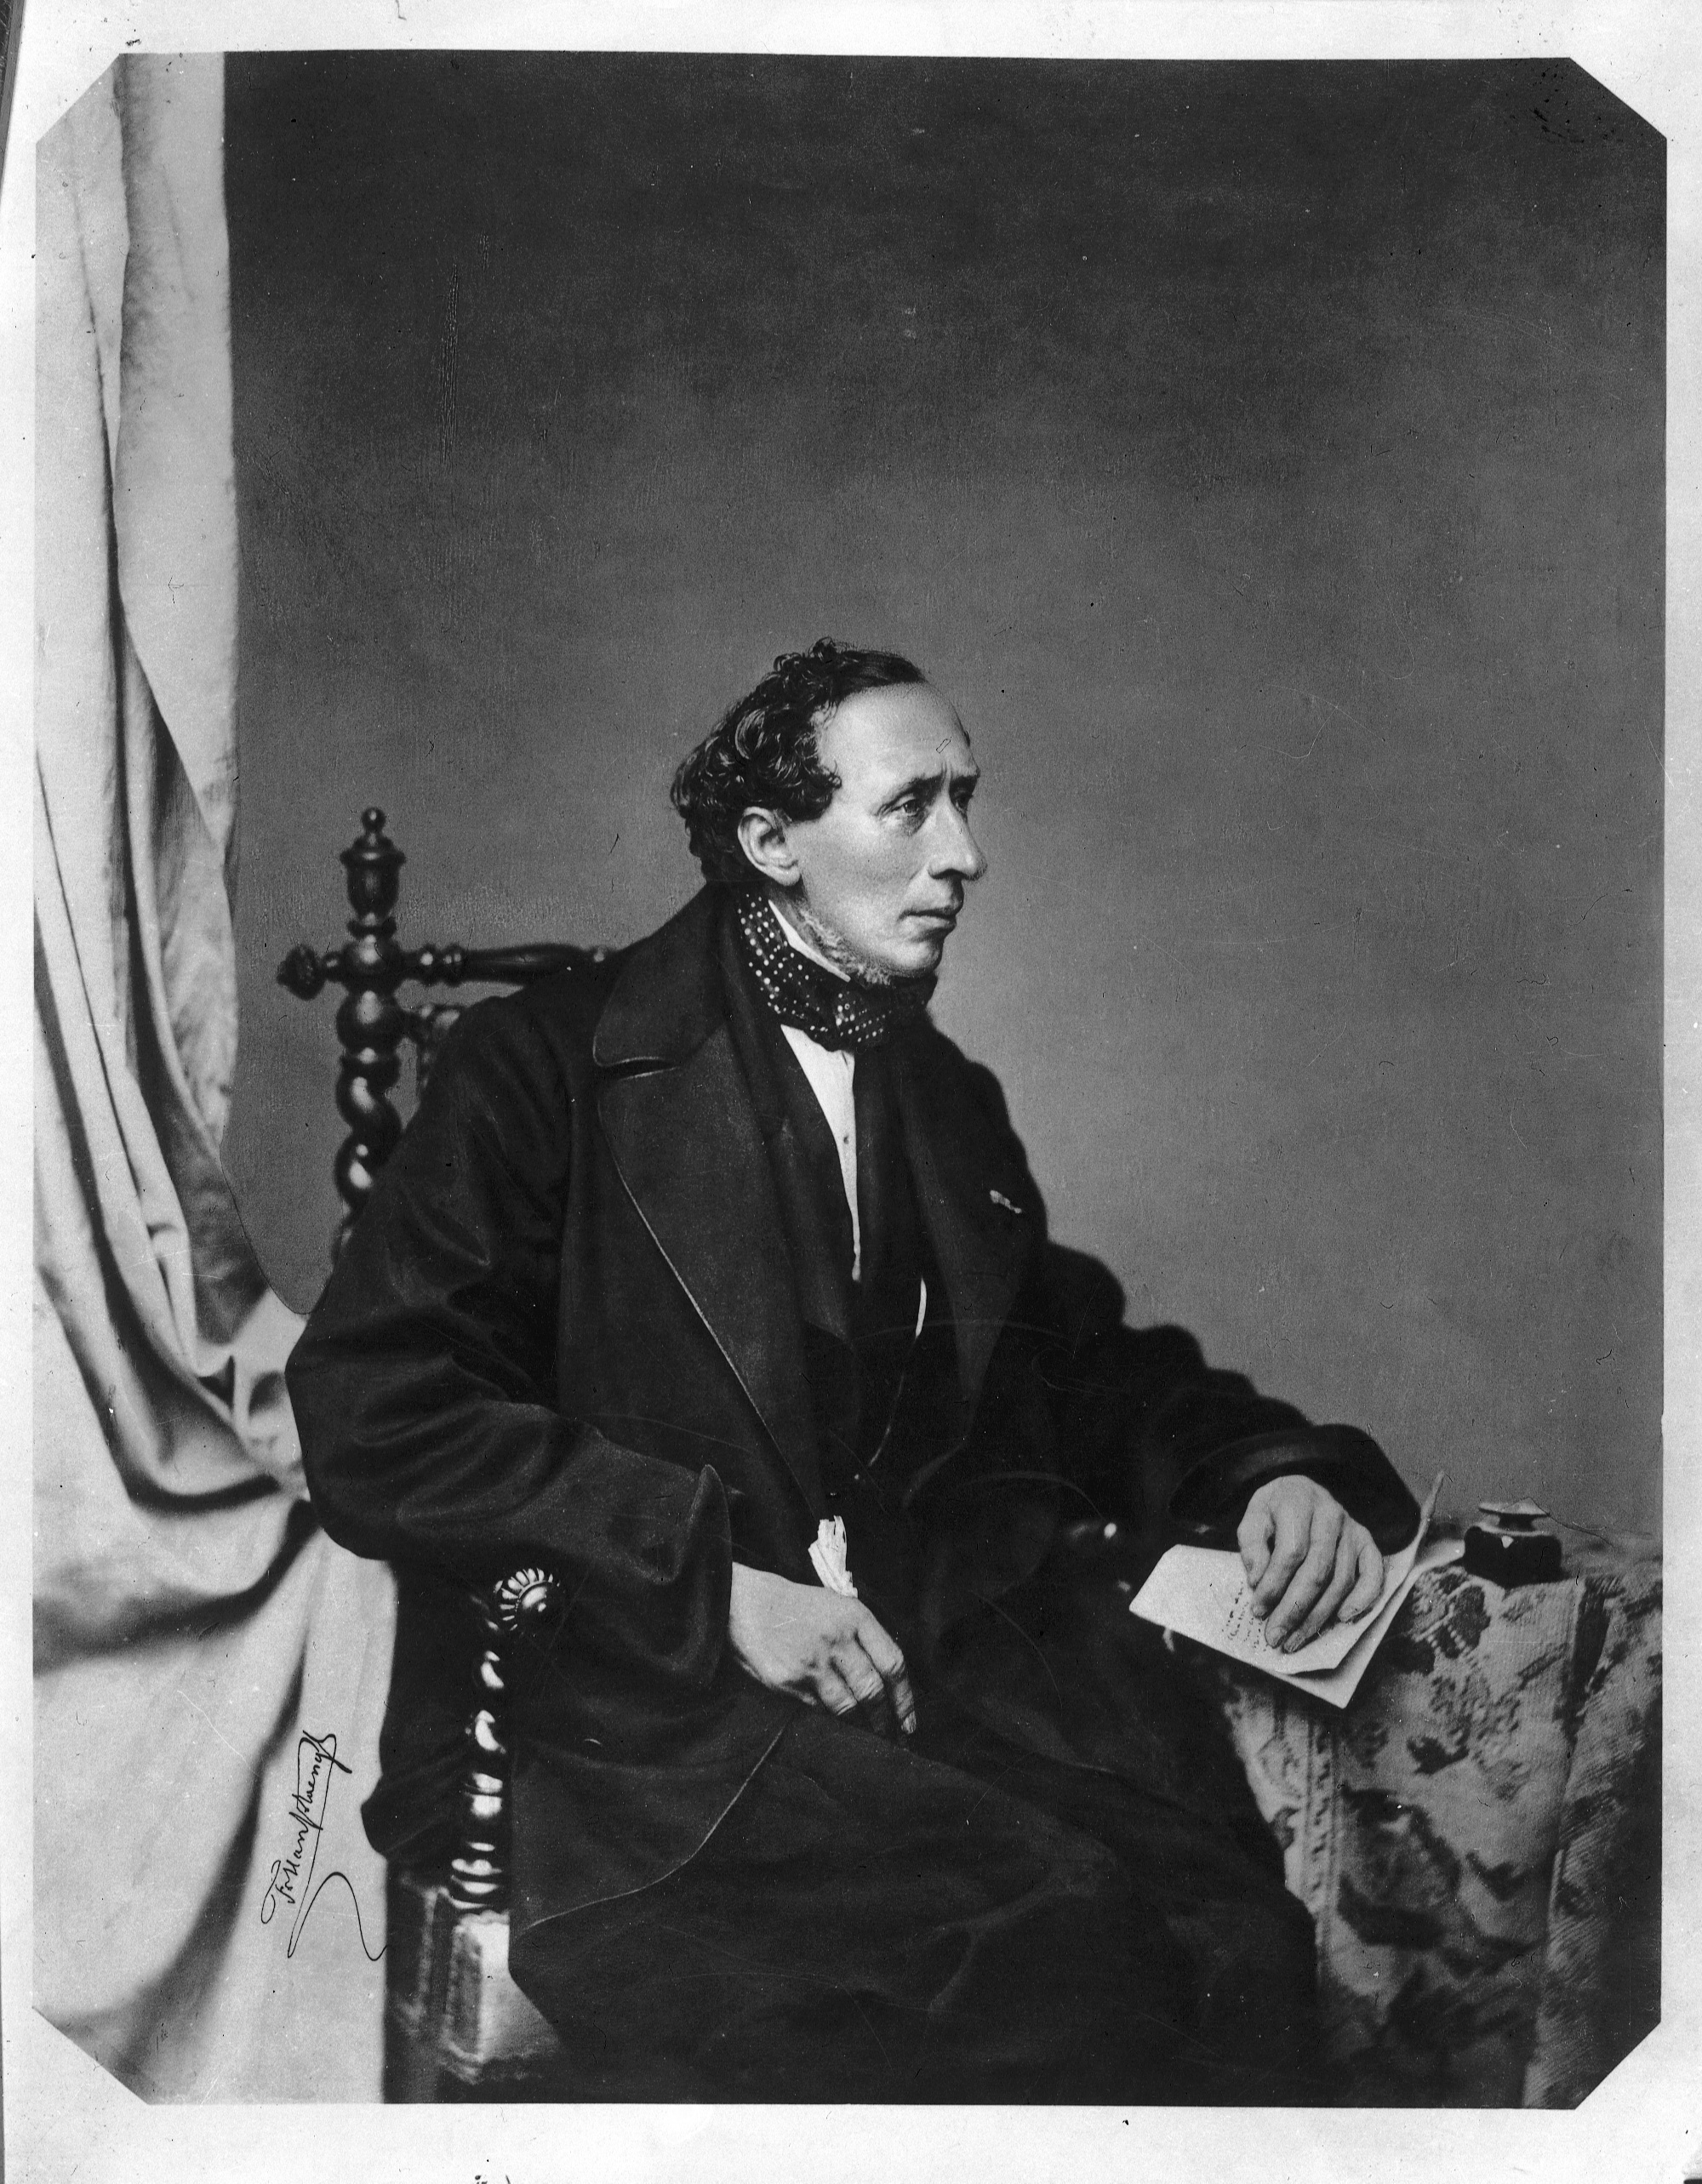 hans christian andersen research paper Marian said: i never knew that hans christian andersen was a paper c  review : personal in detail, yet very objective and grounded in research, this is a great.